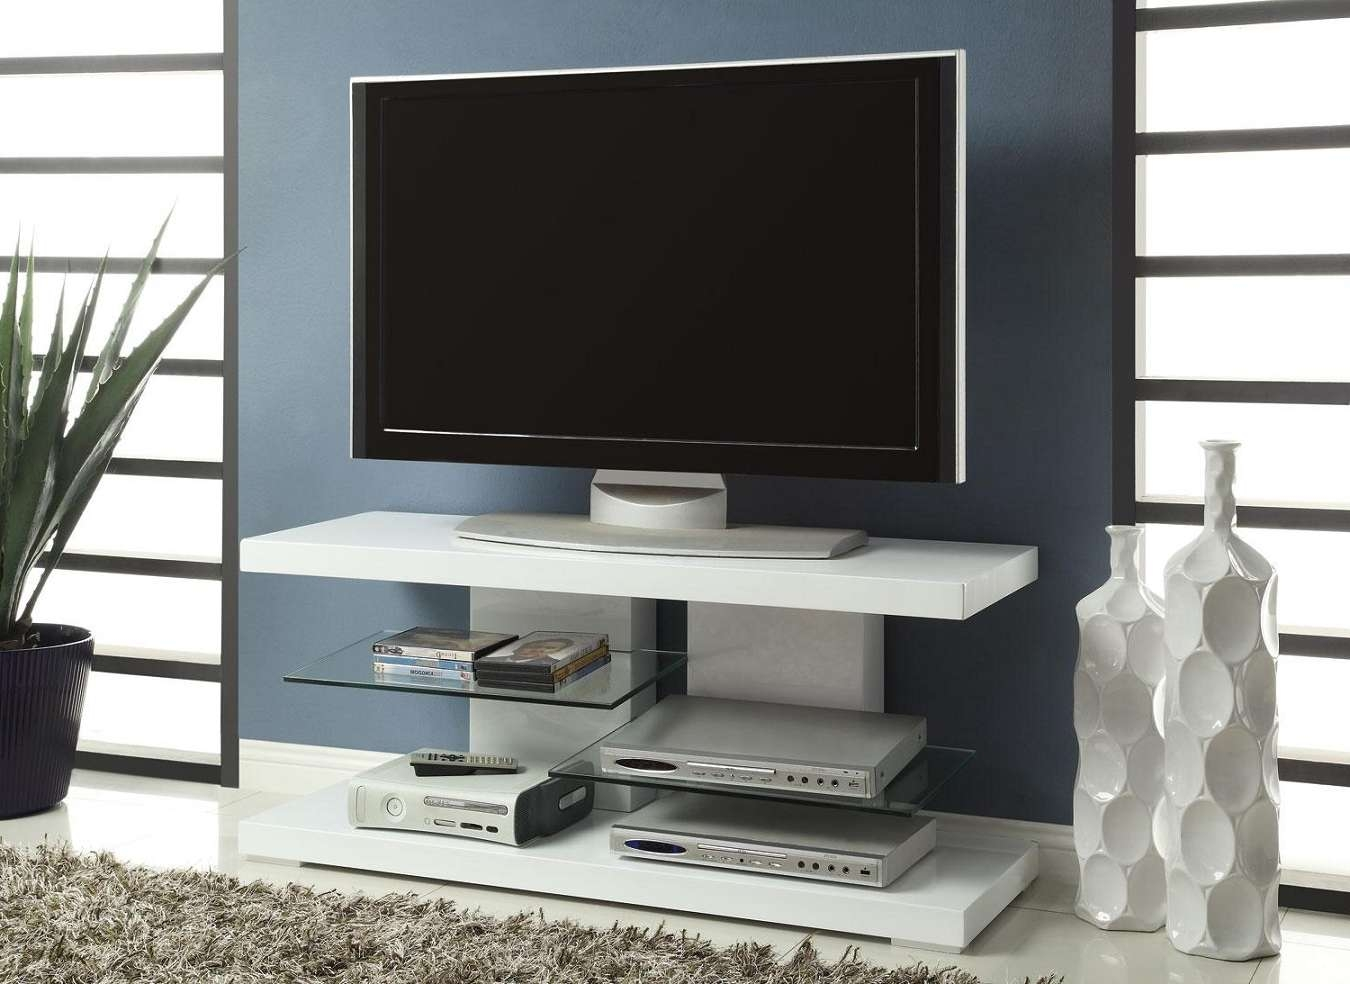 White Painted Plywood Flat Screen Tv Stand With Tempered Glass For Modern Tv Stands For Flat Screens (View 14 of 15)